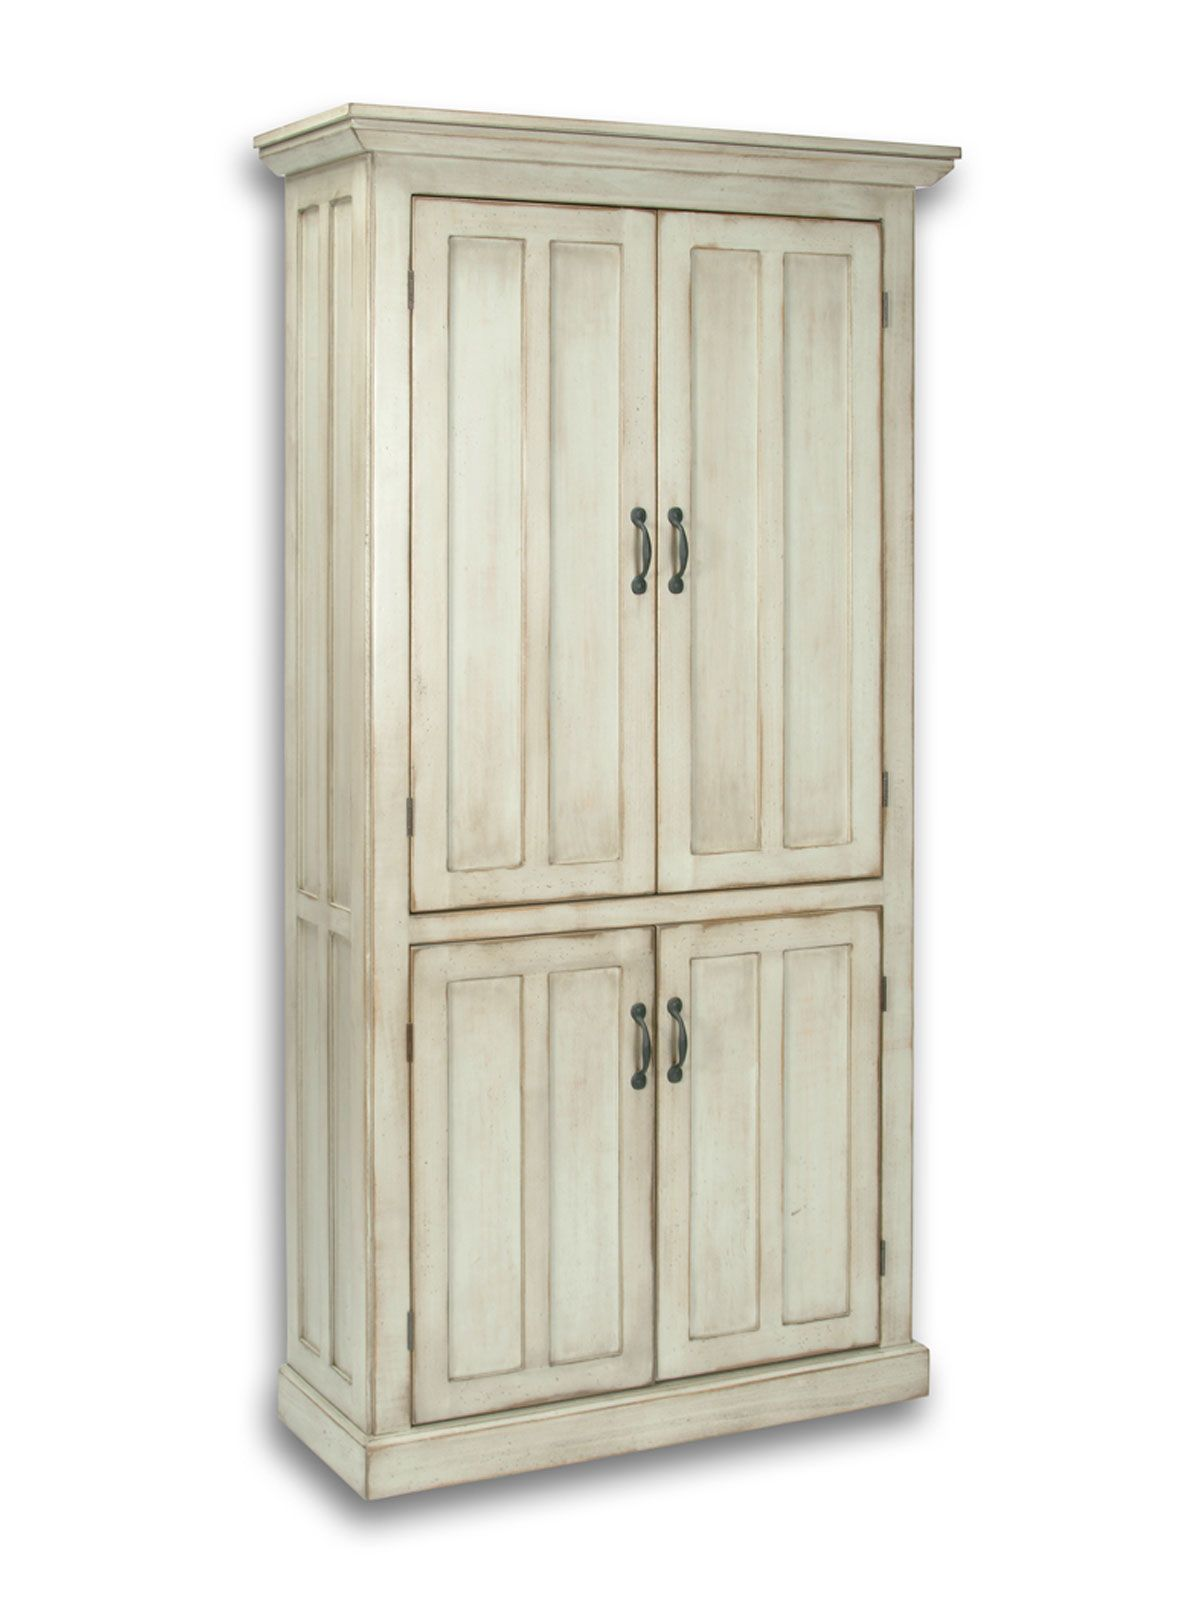 A Classic Piece With Basic Style, The Country Cottage Pantry